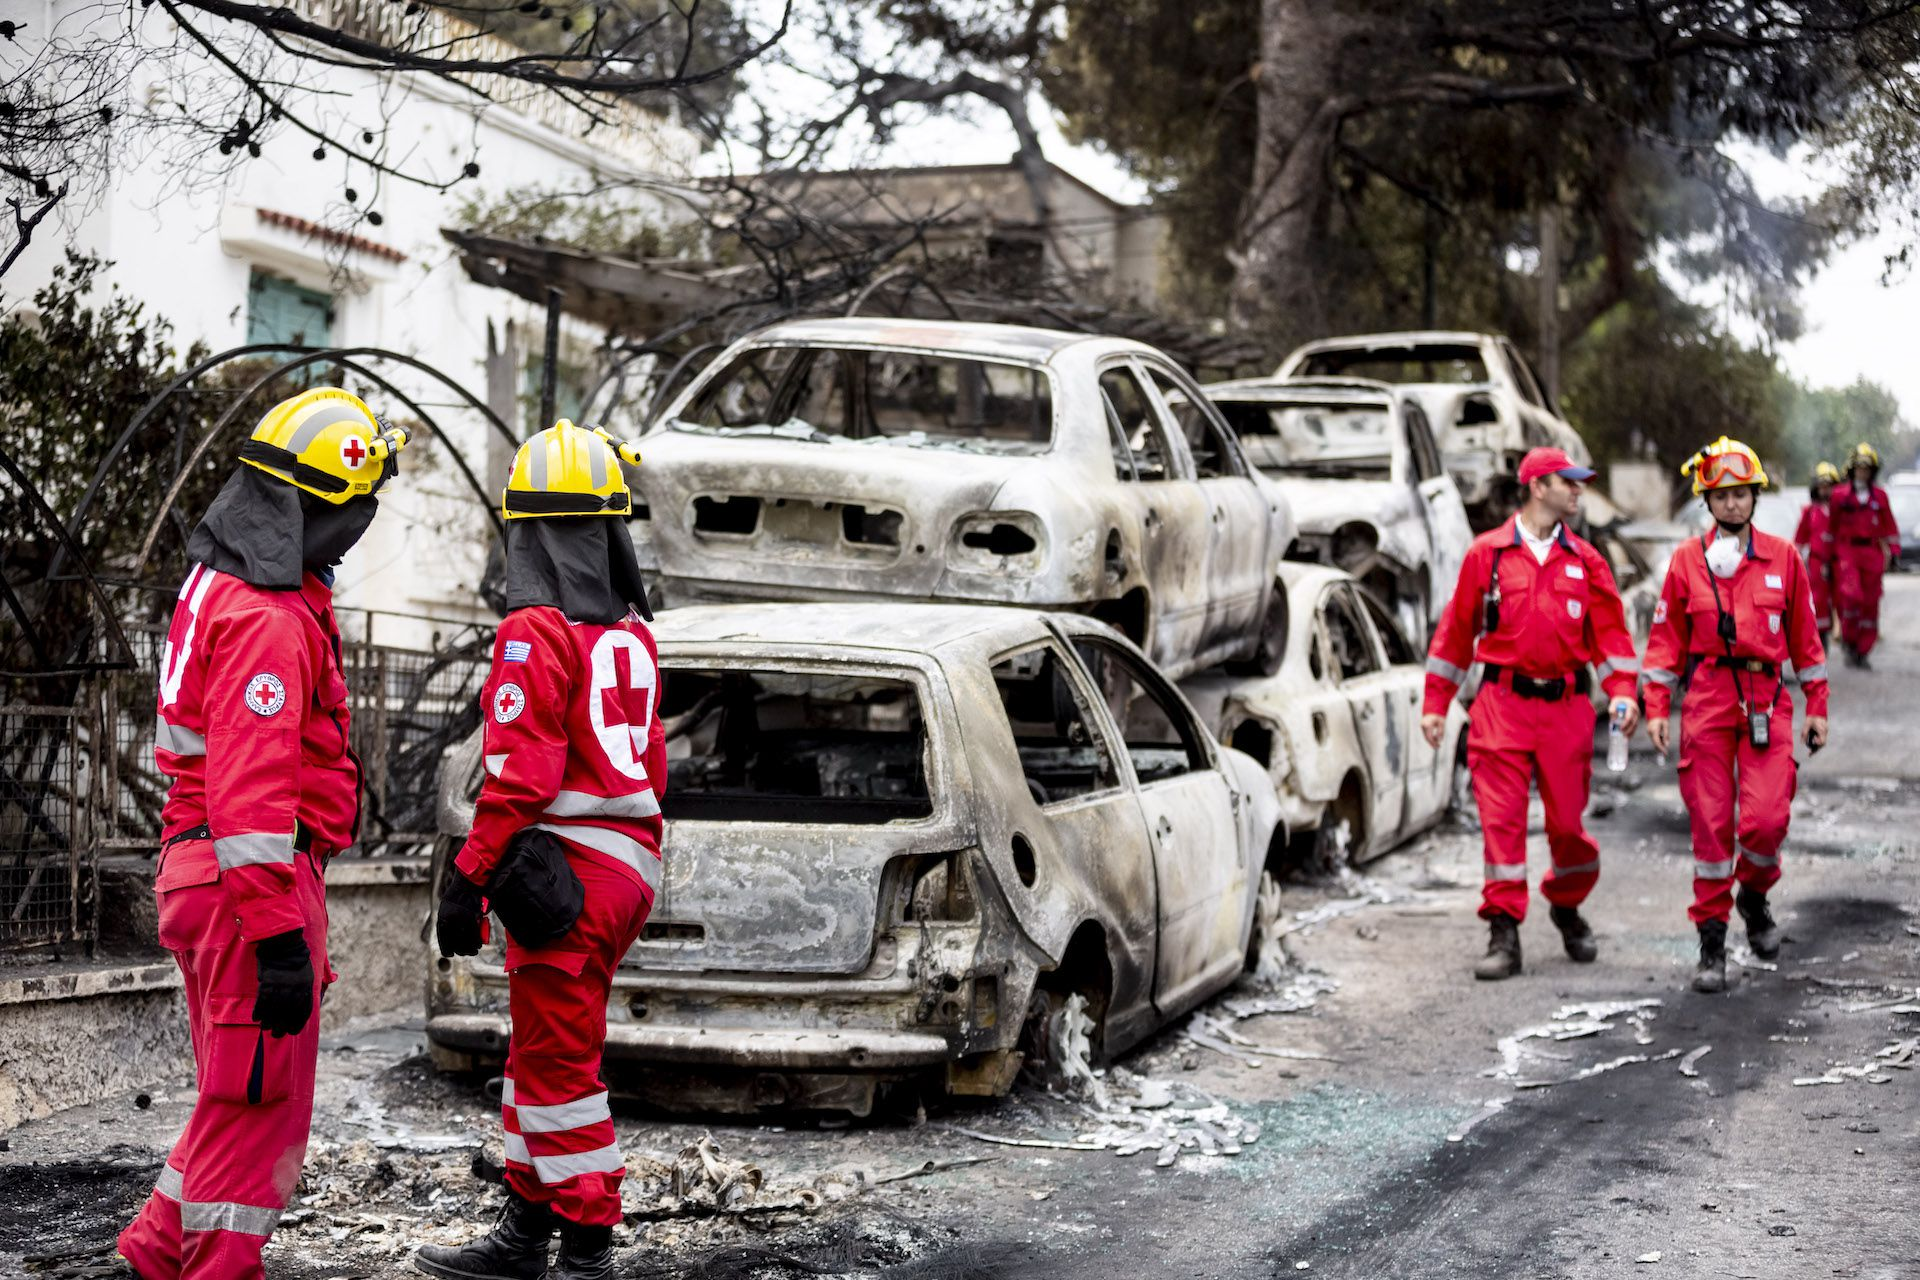 Forces of the Greek Red Cross stand on a road next to burnt cars after a fire raged in Mati, Greece on July 24, 2018.